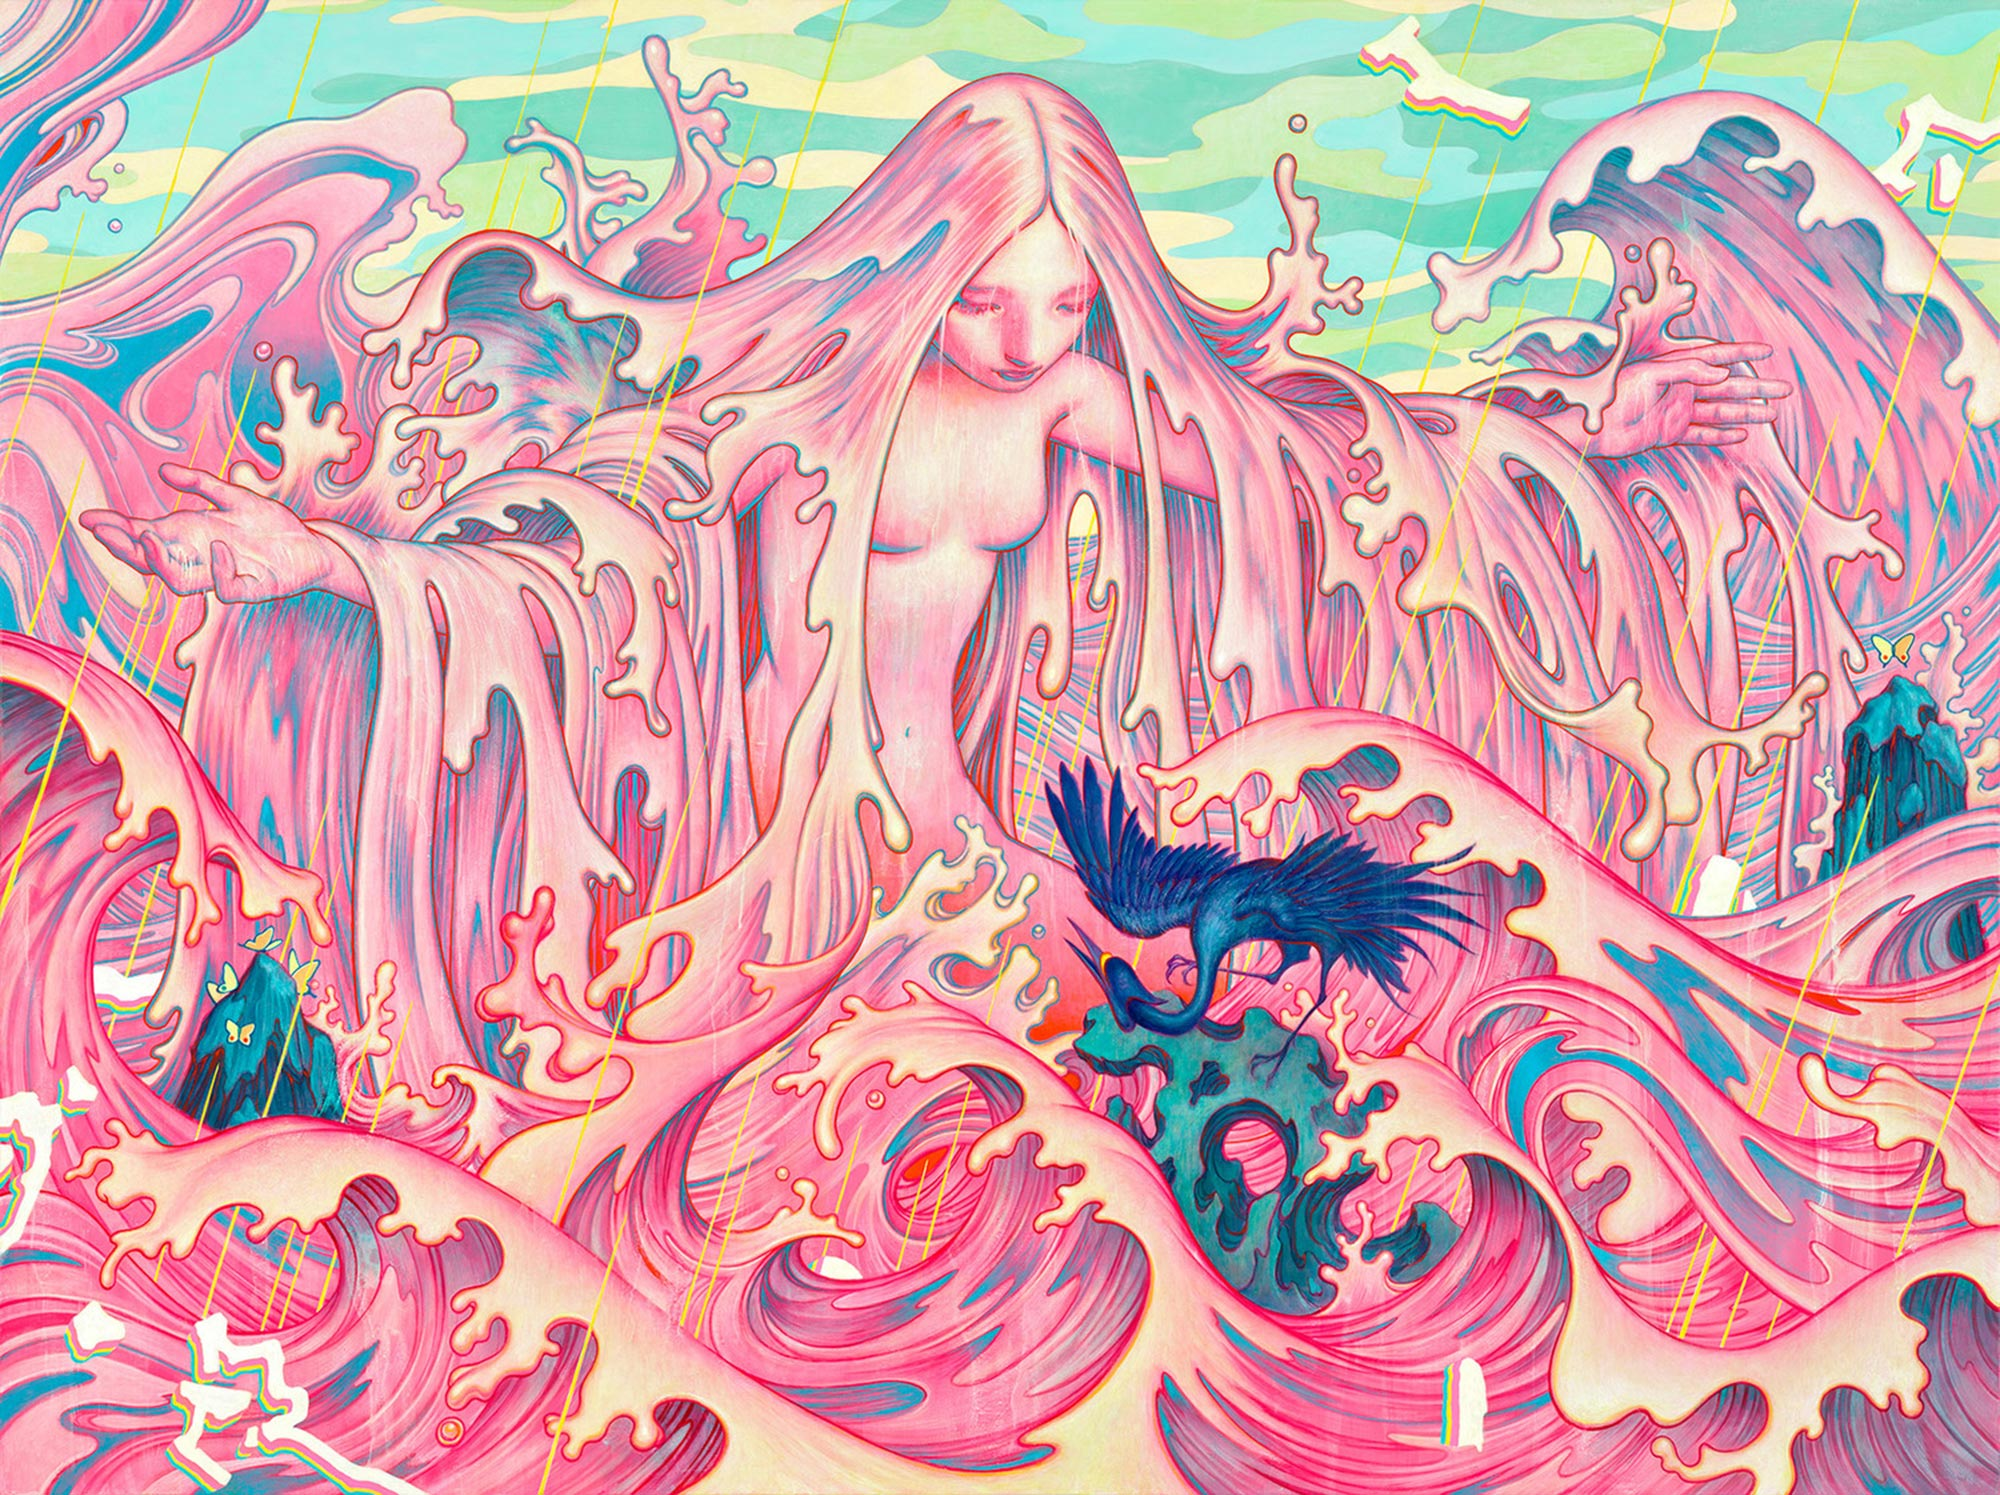 Mind-Melting And Eye-Popping Artwork by James Jean